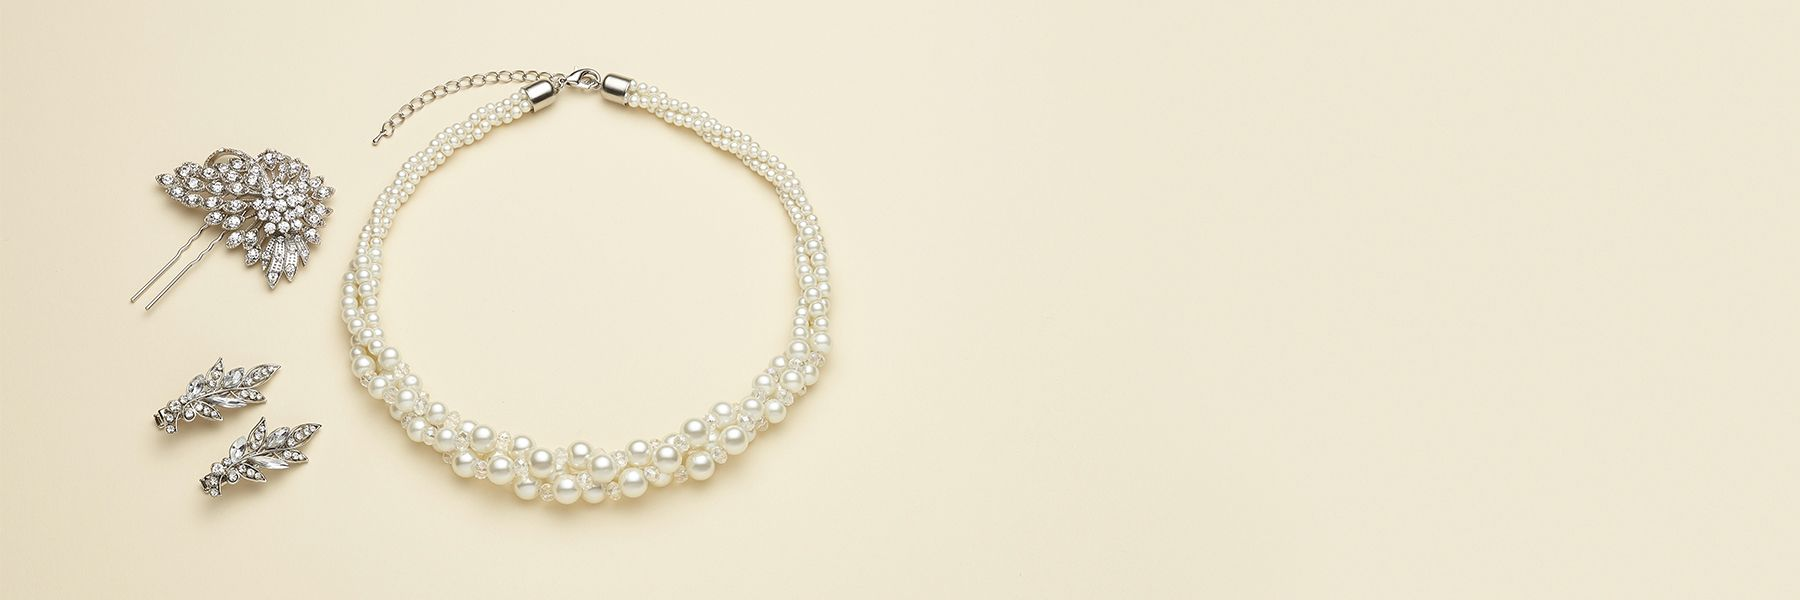 Pearl jewellery at John Lewis